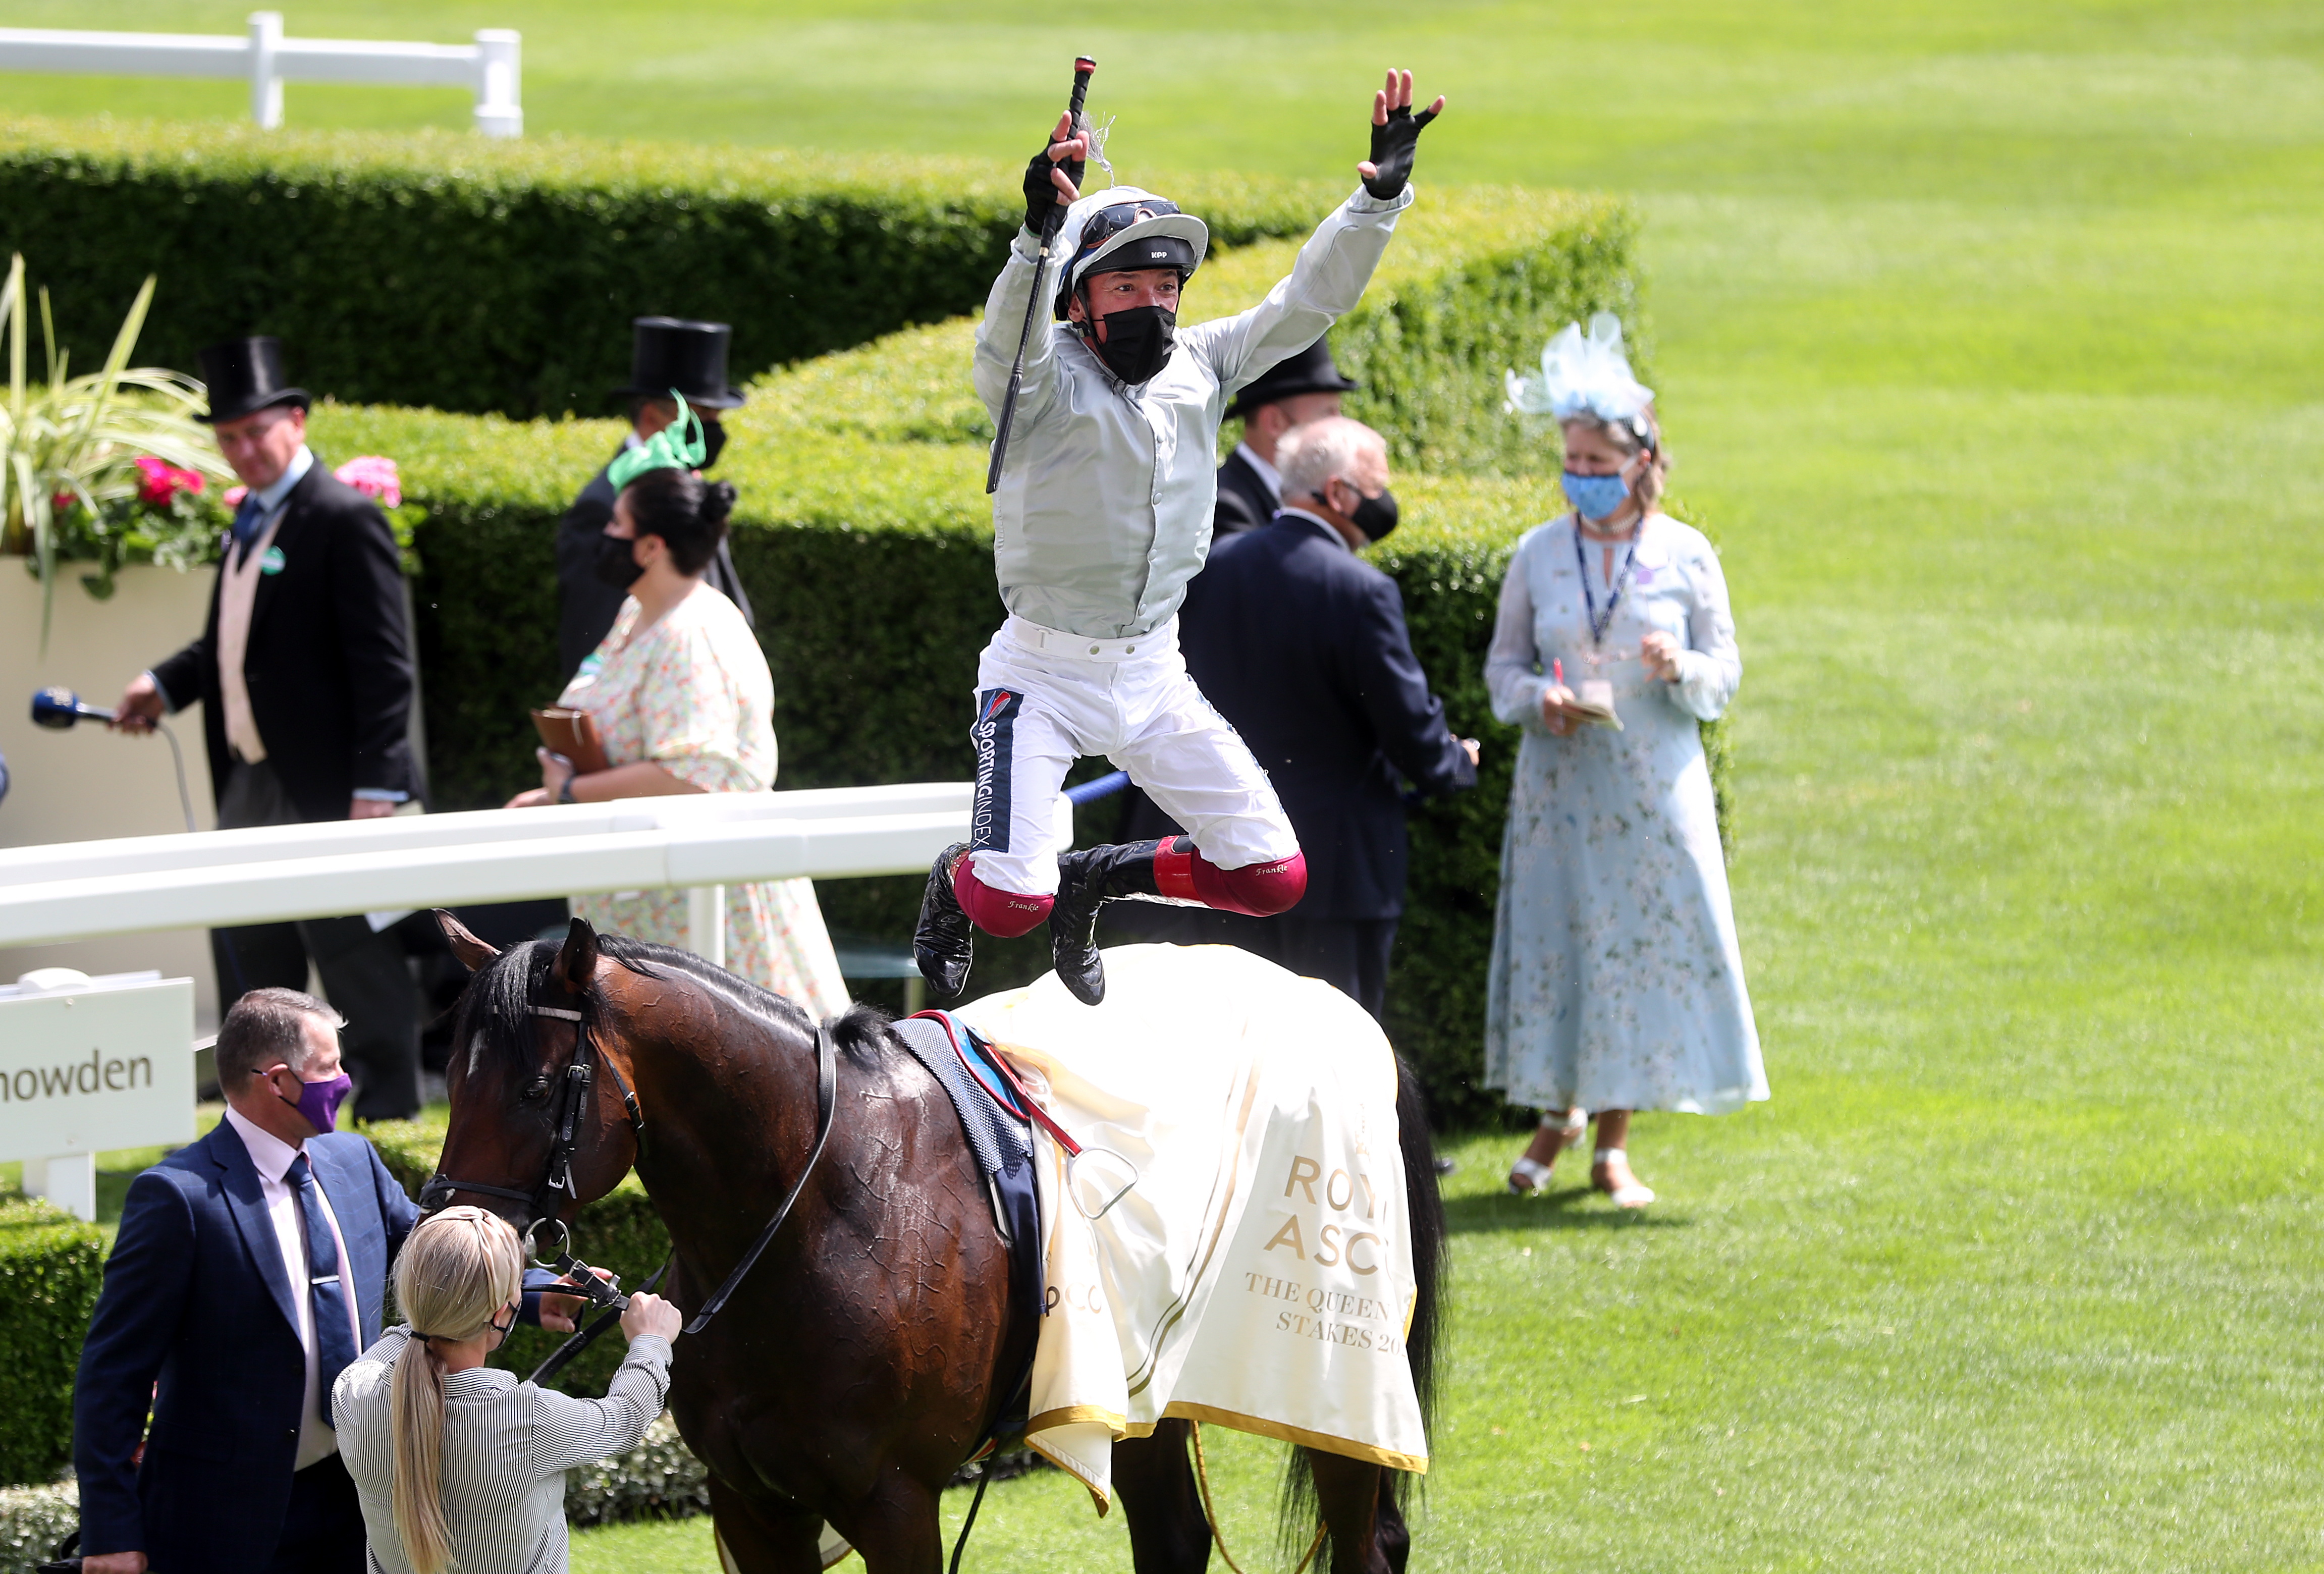 <p>Jockey Frankie Dettori performs his trademark flying dismount as he celebrates winning the Queen Anne Stakes on Palace Pier during day one of Royal Ascot at Ascot Racecourse. Picture date: Tuesday June 15, 2021.</p>